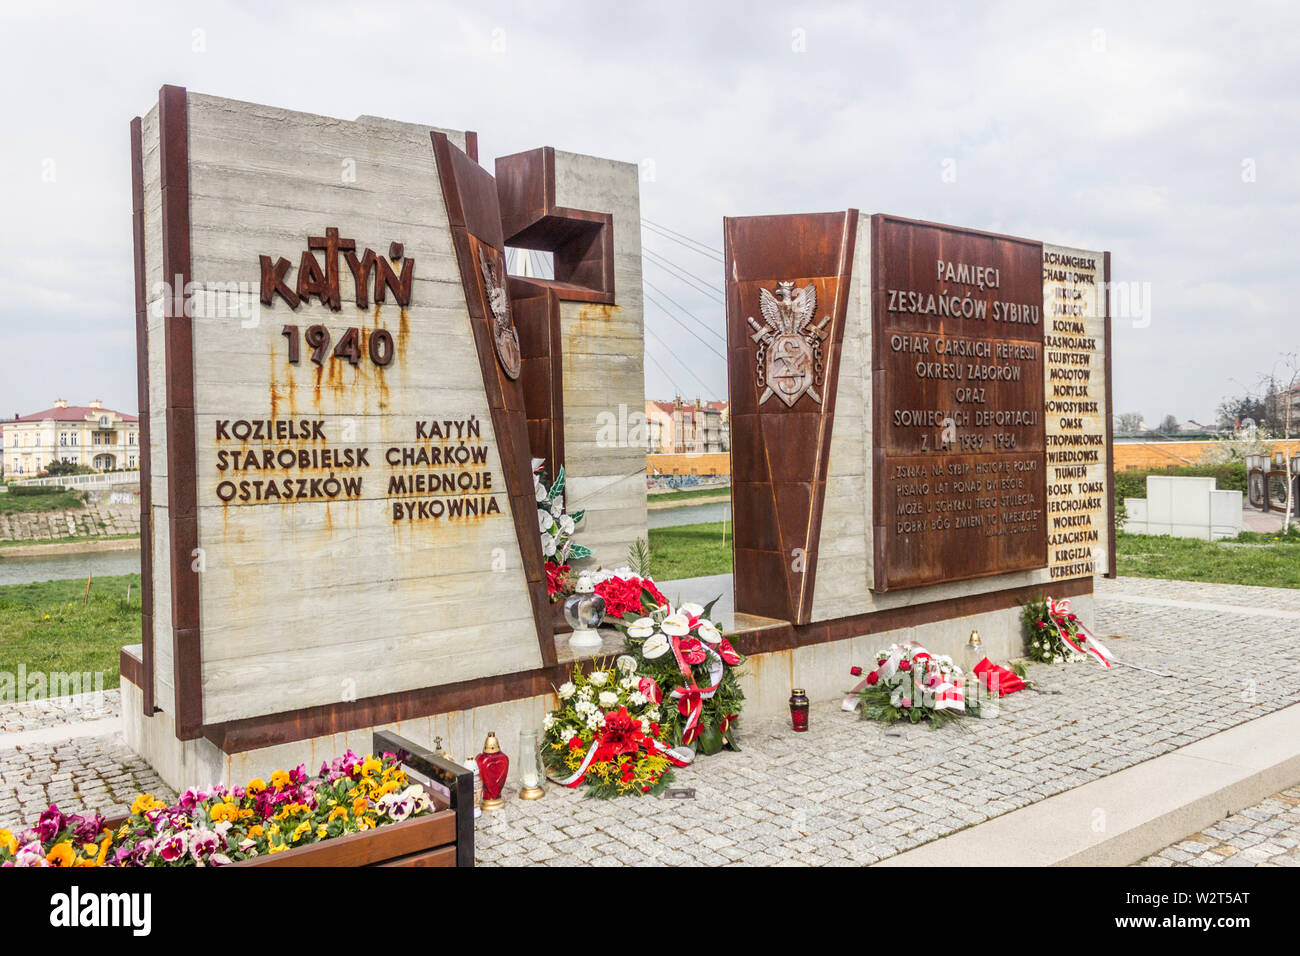 Przemysl, Poland, - April 13, 2019. The monument in memory of shooting at Katyn in 1940. Mass executions of Polish military officers and intelligentsi - Stock Image